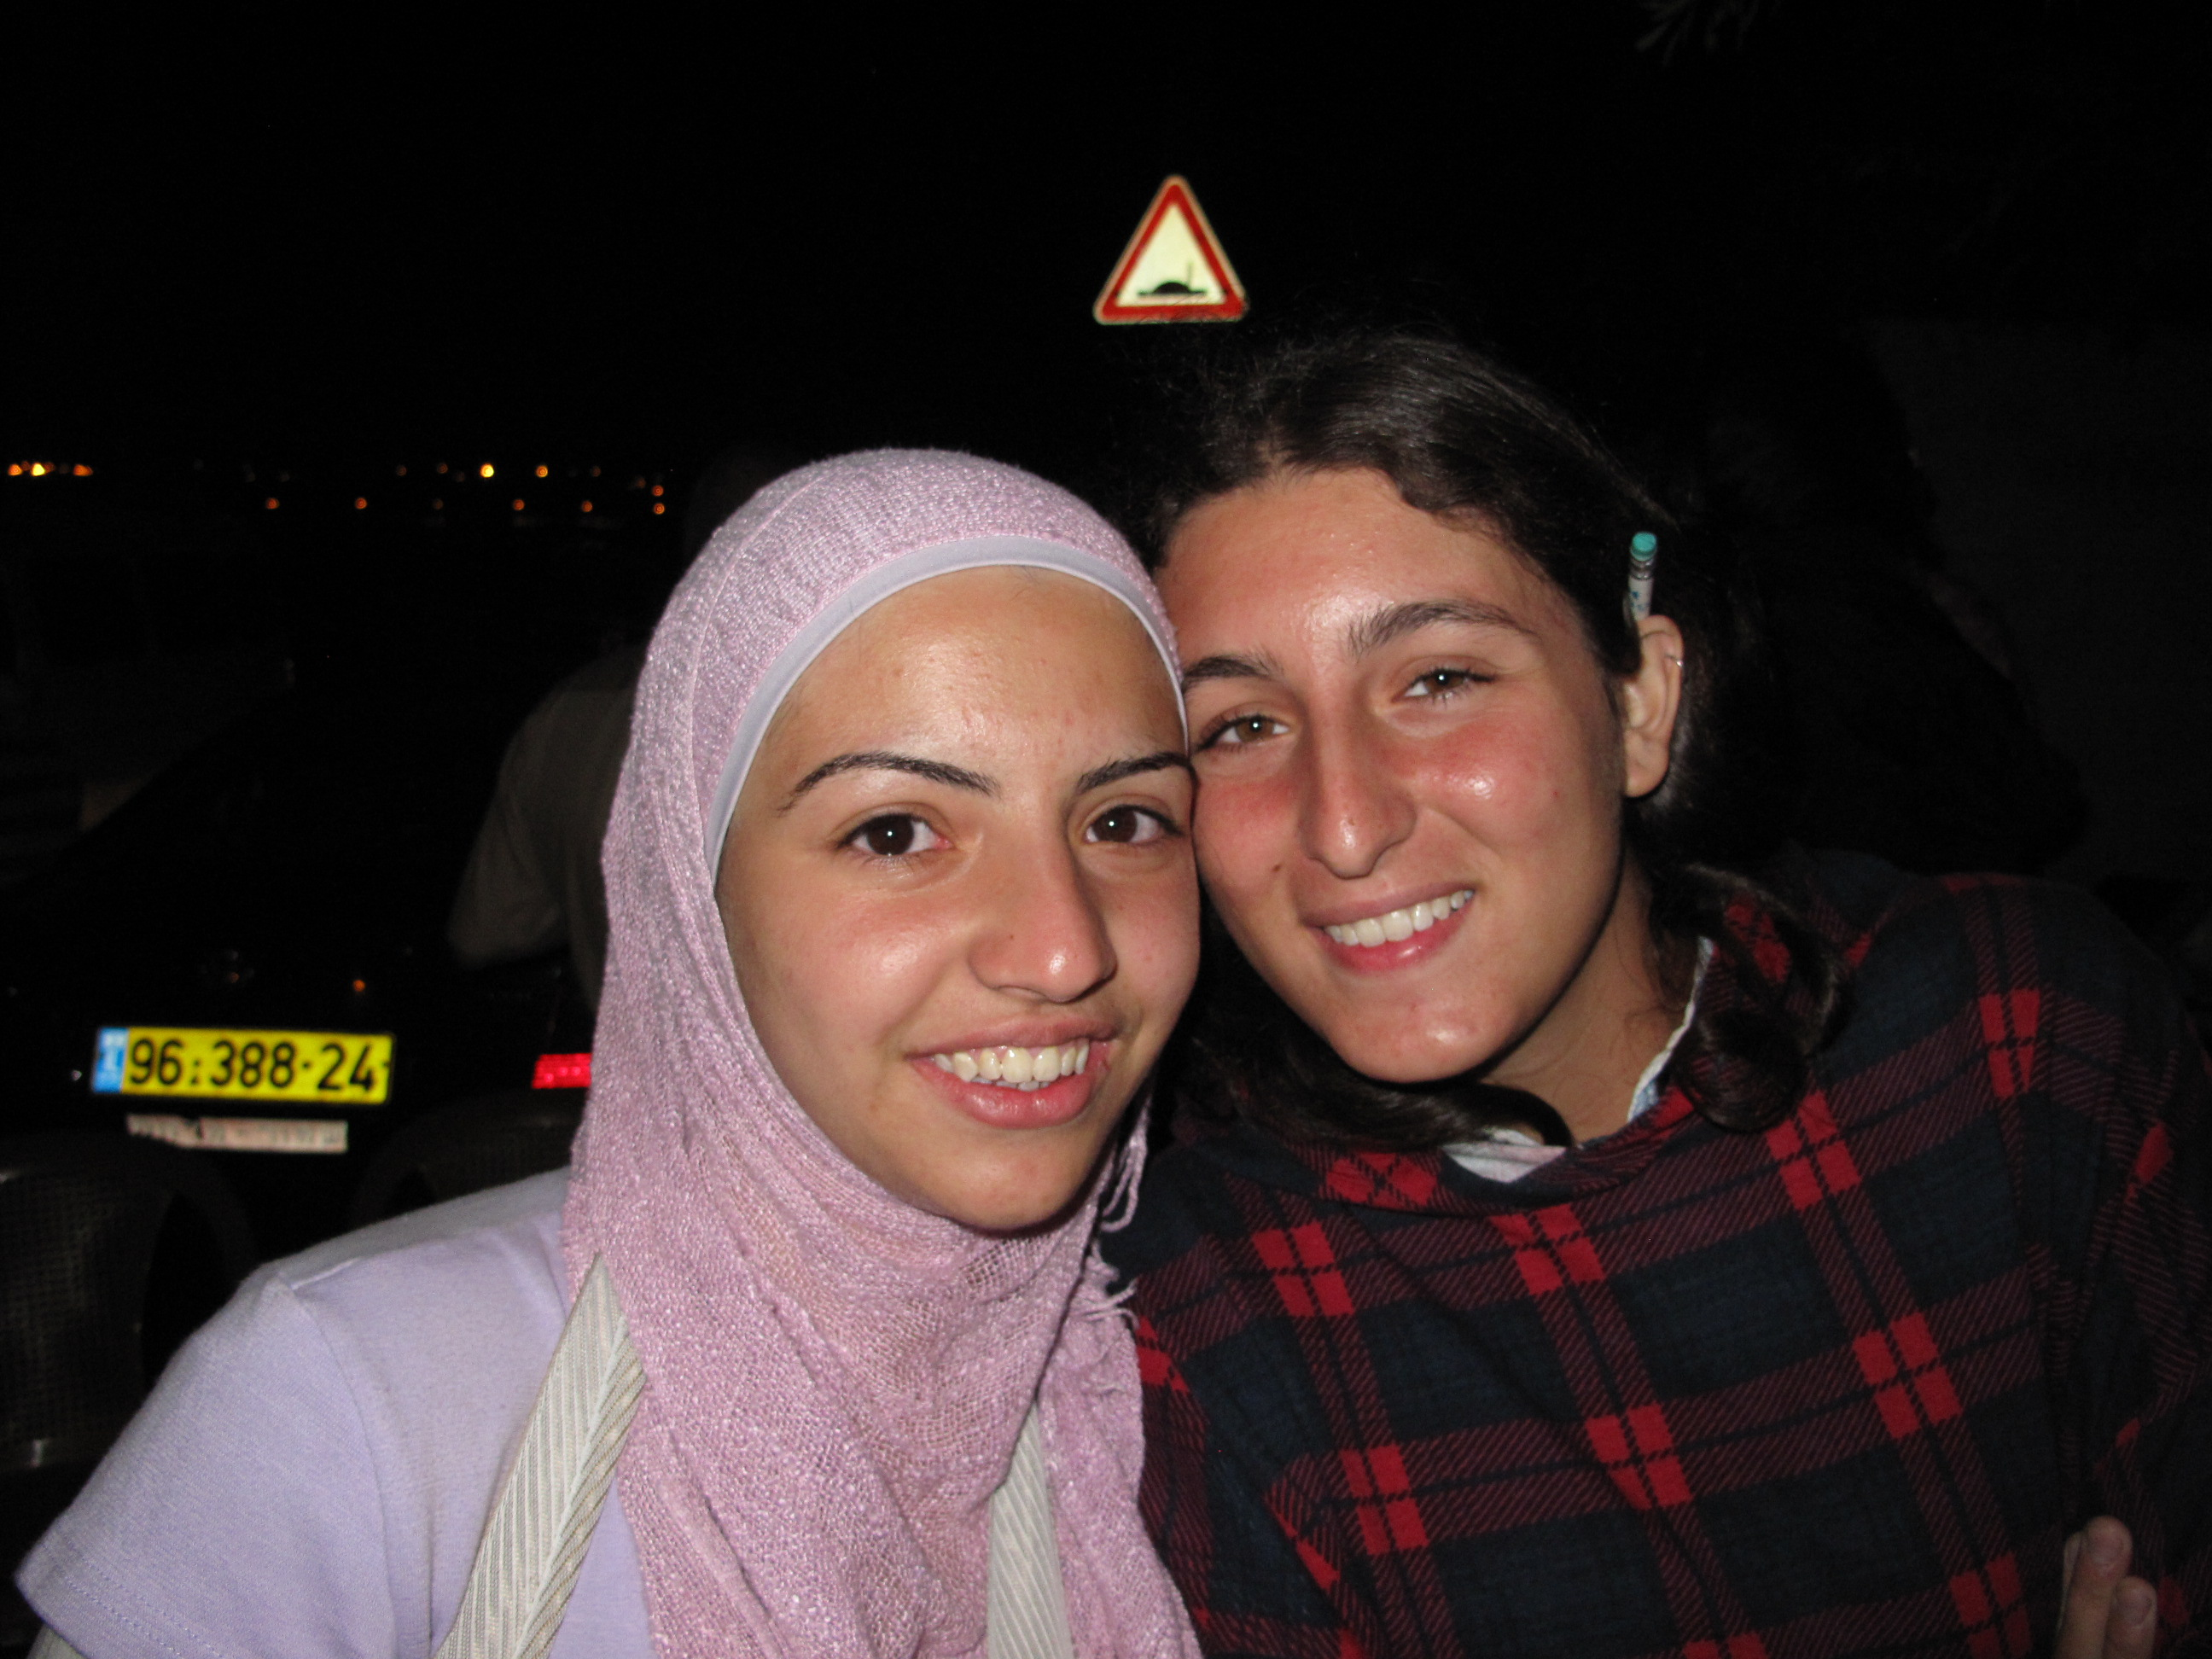 Charihen Hannoun, 20, was hit by police with a rifle, leaving her arm in a sling. She is studying Psychology at Abu Dis University.. She is pictured here with one of the internationals who have been sleeping on the streets in solidarity with the family.